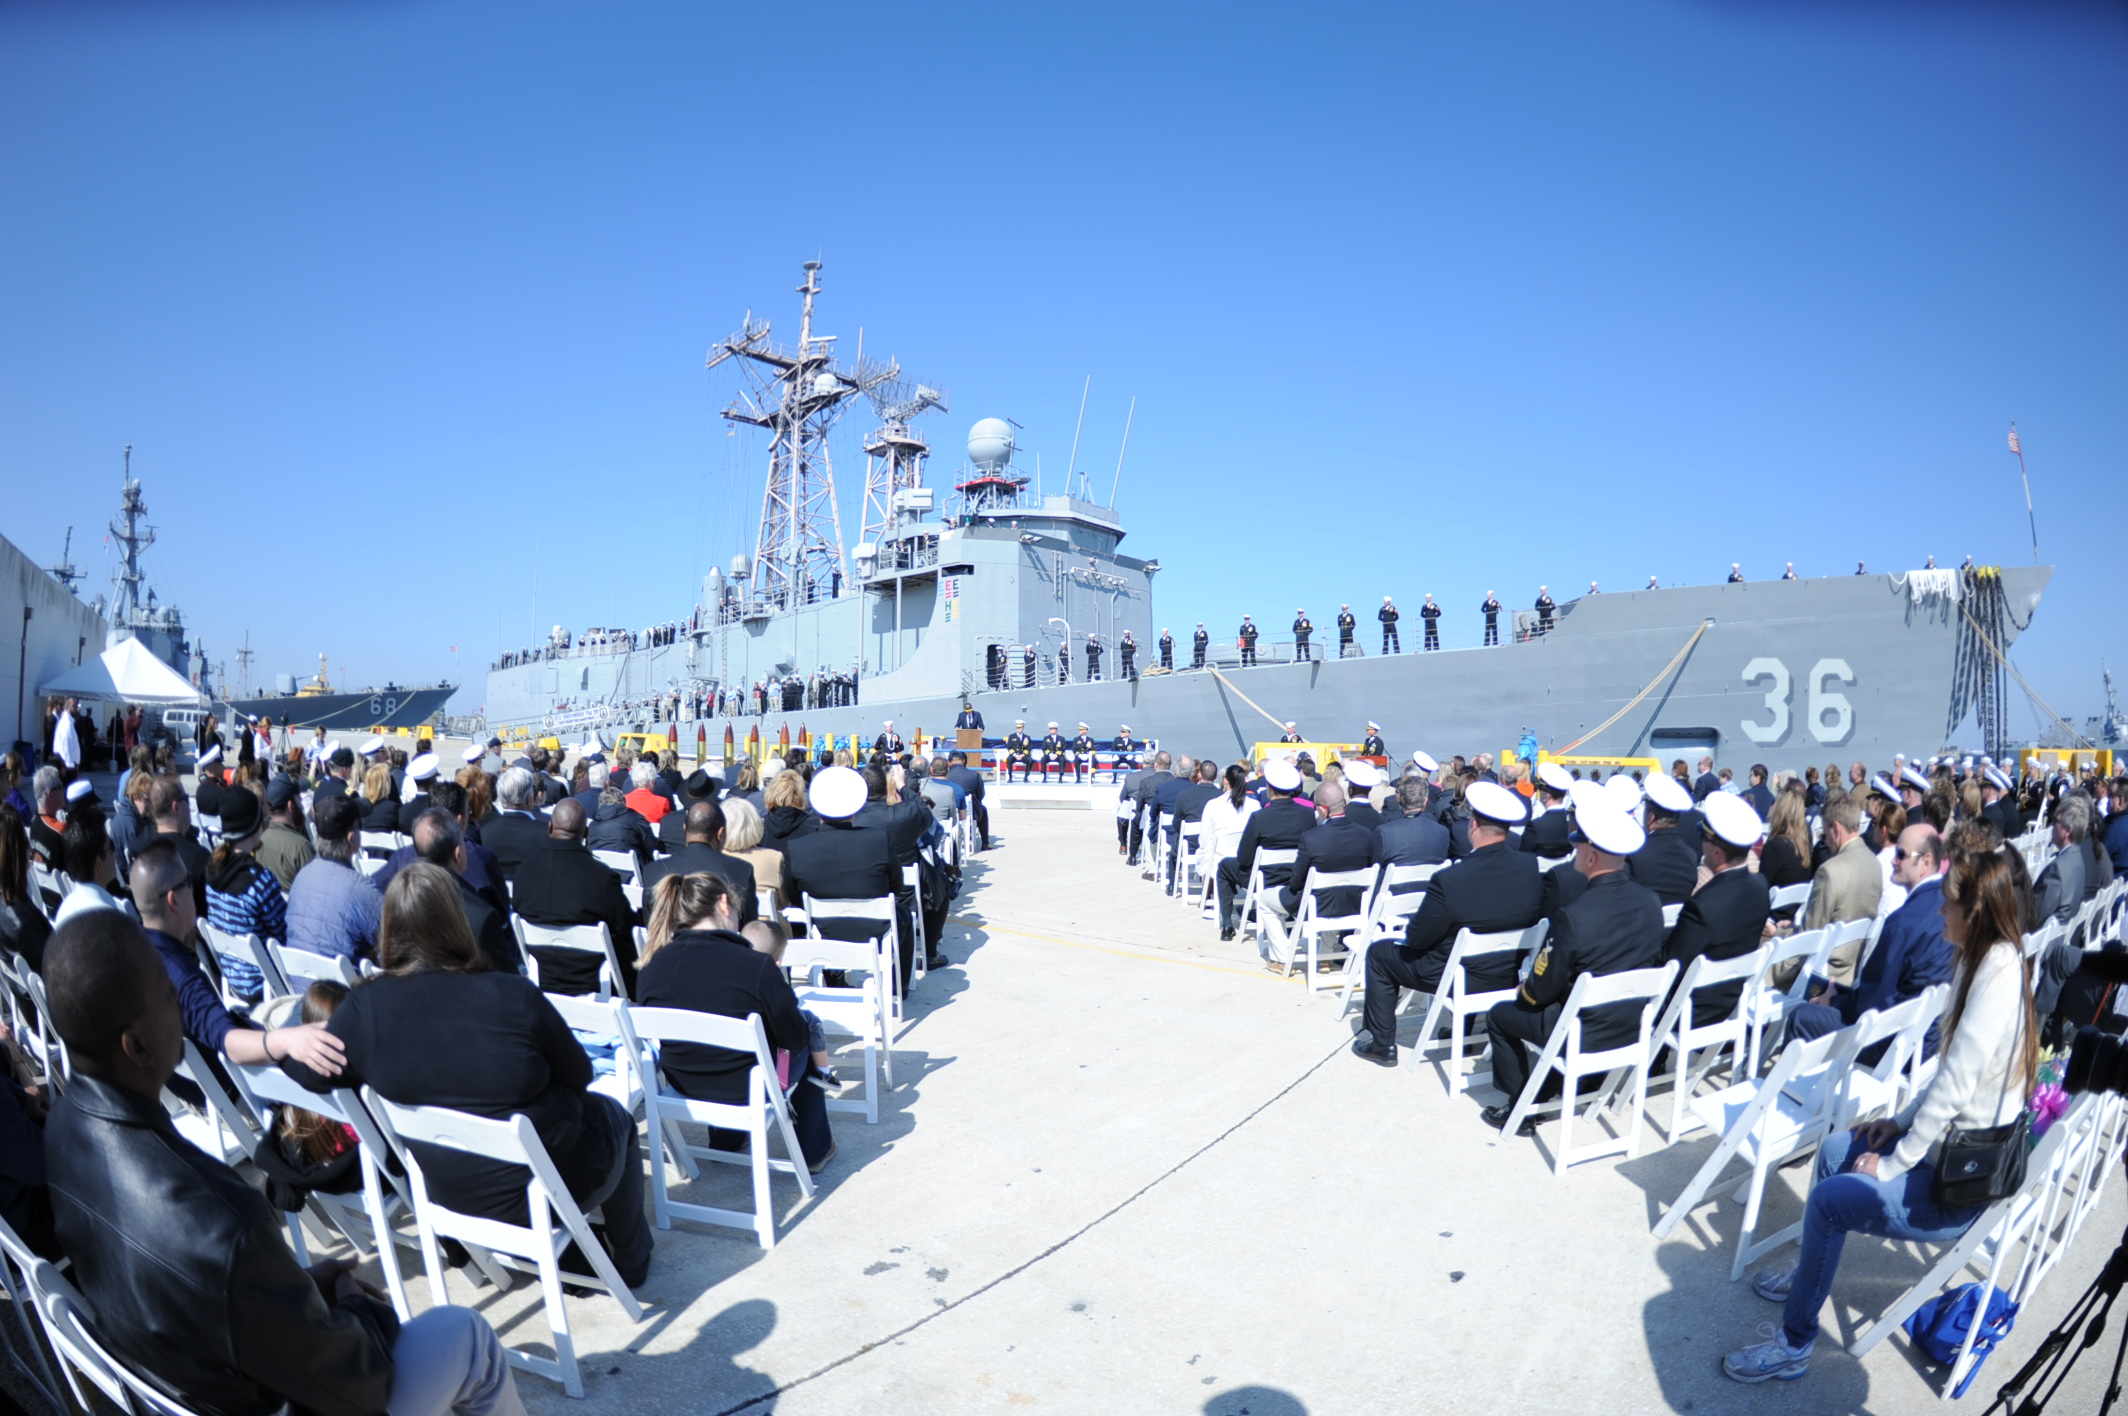 USS UNDERWOOD FFG-36 Decommissioning Ceremony 08.03.2013Bild: U.S. Navy